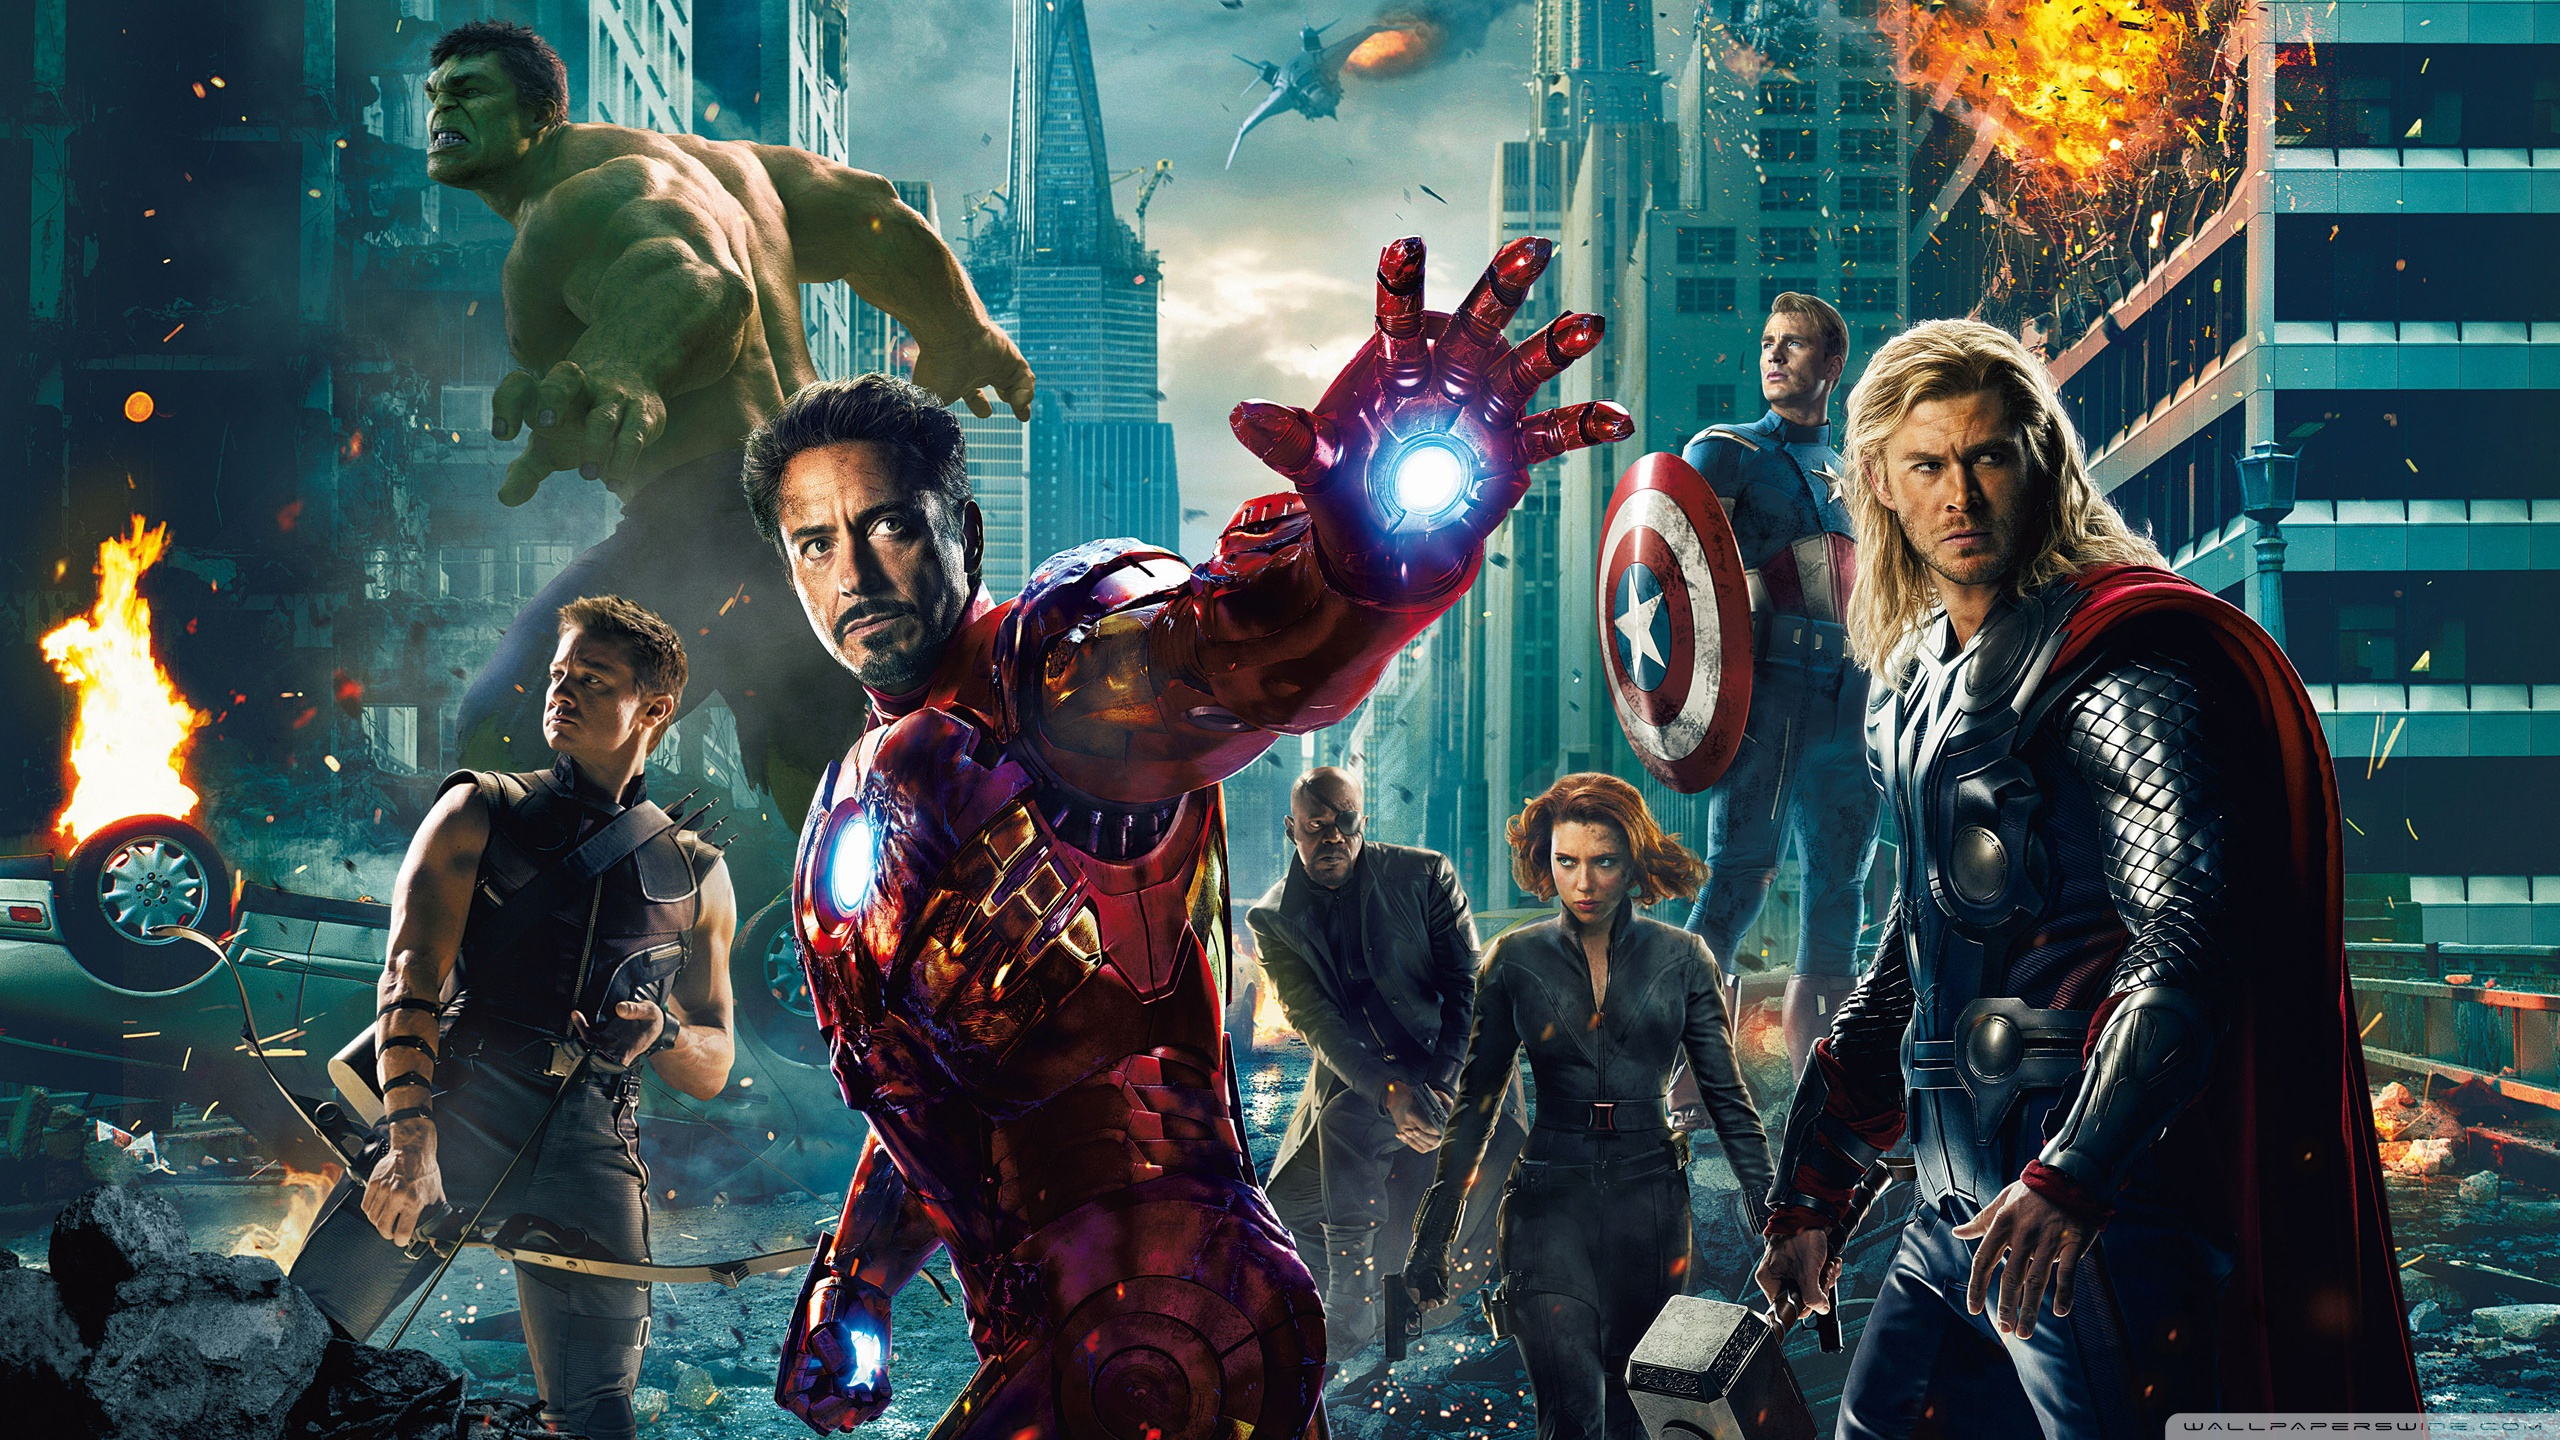 The Avengers UHD Wallpaper